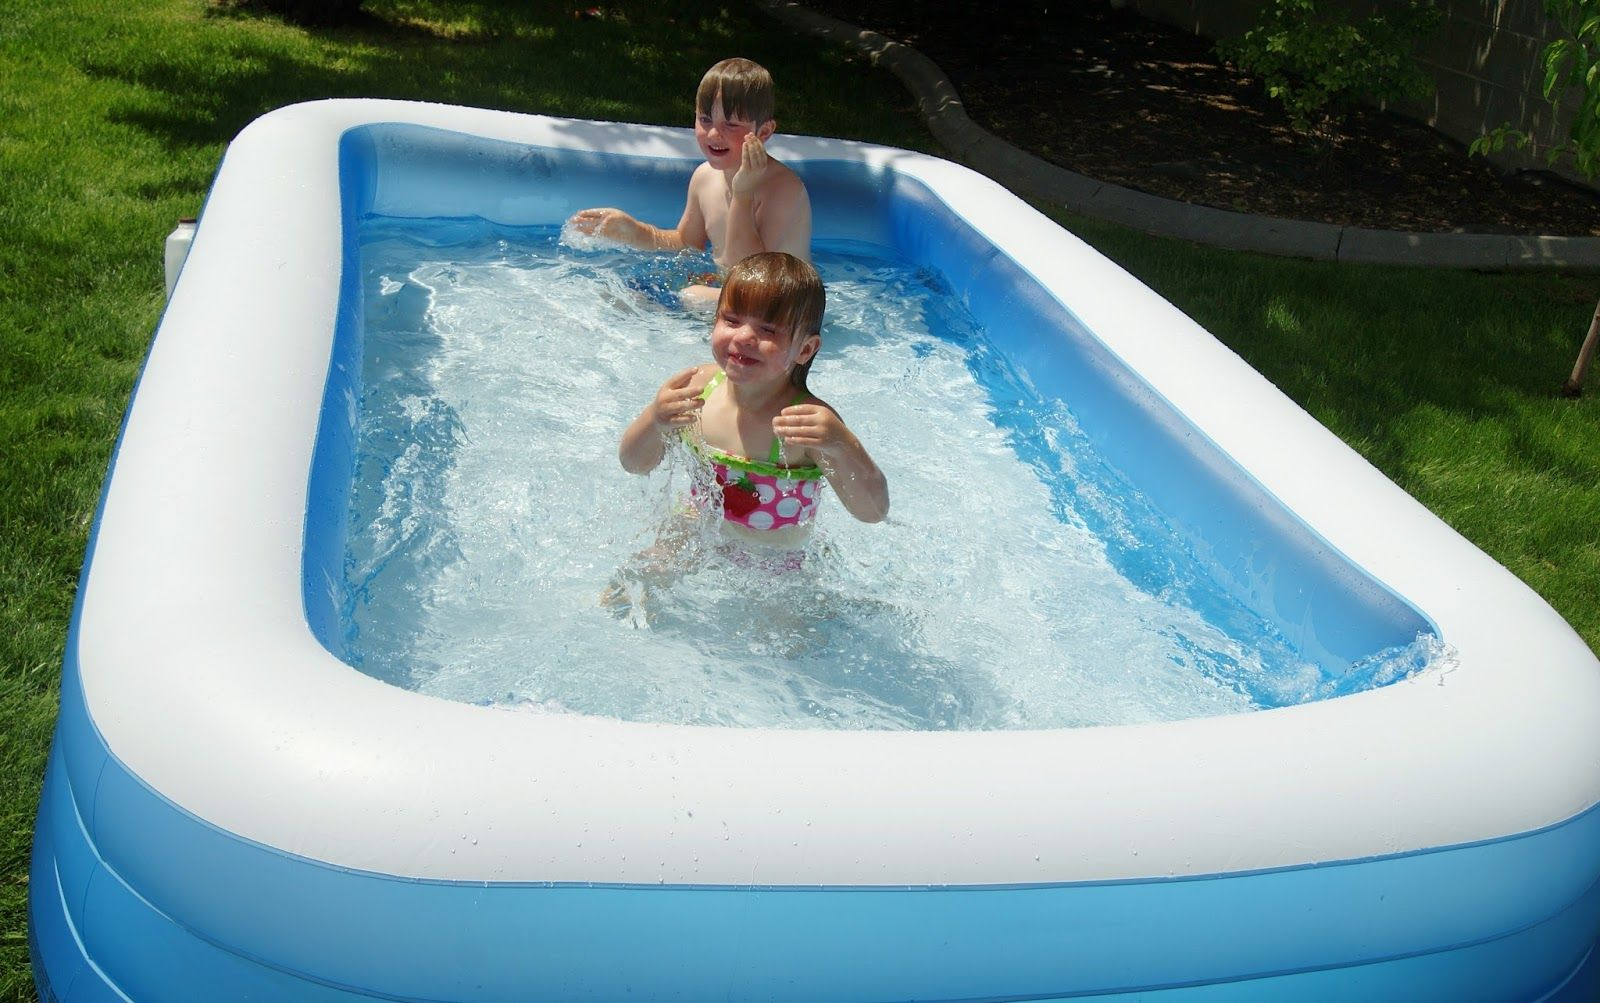 Adventures With A And A Kiddie Pool Life Hack Kiddie Pool Pool Life Pool